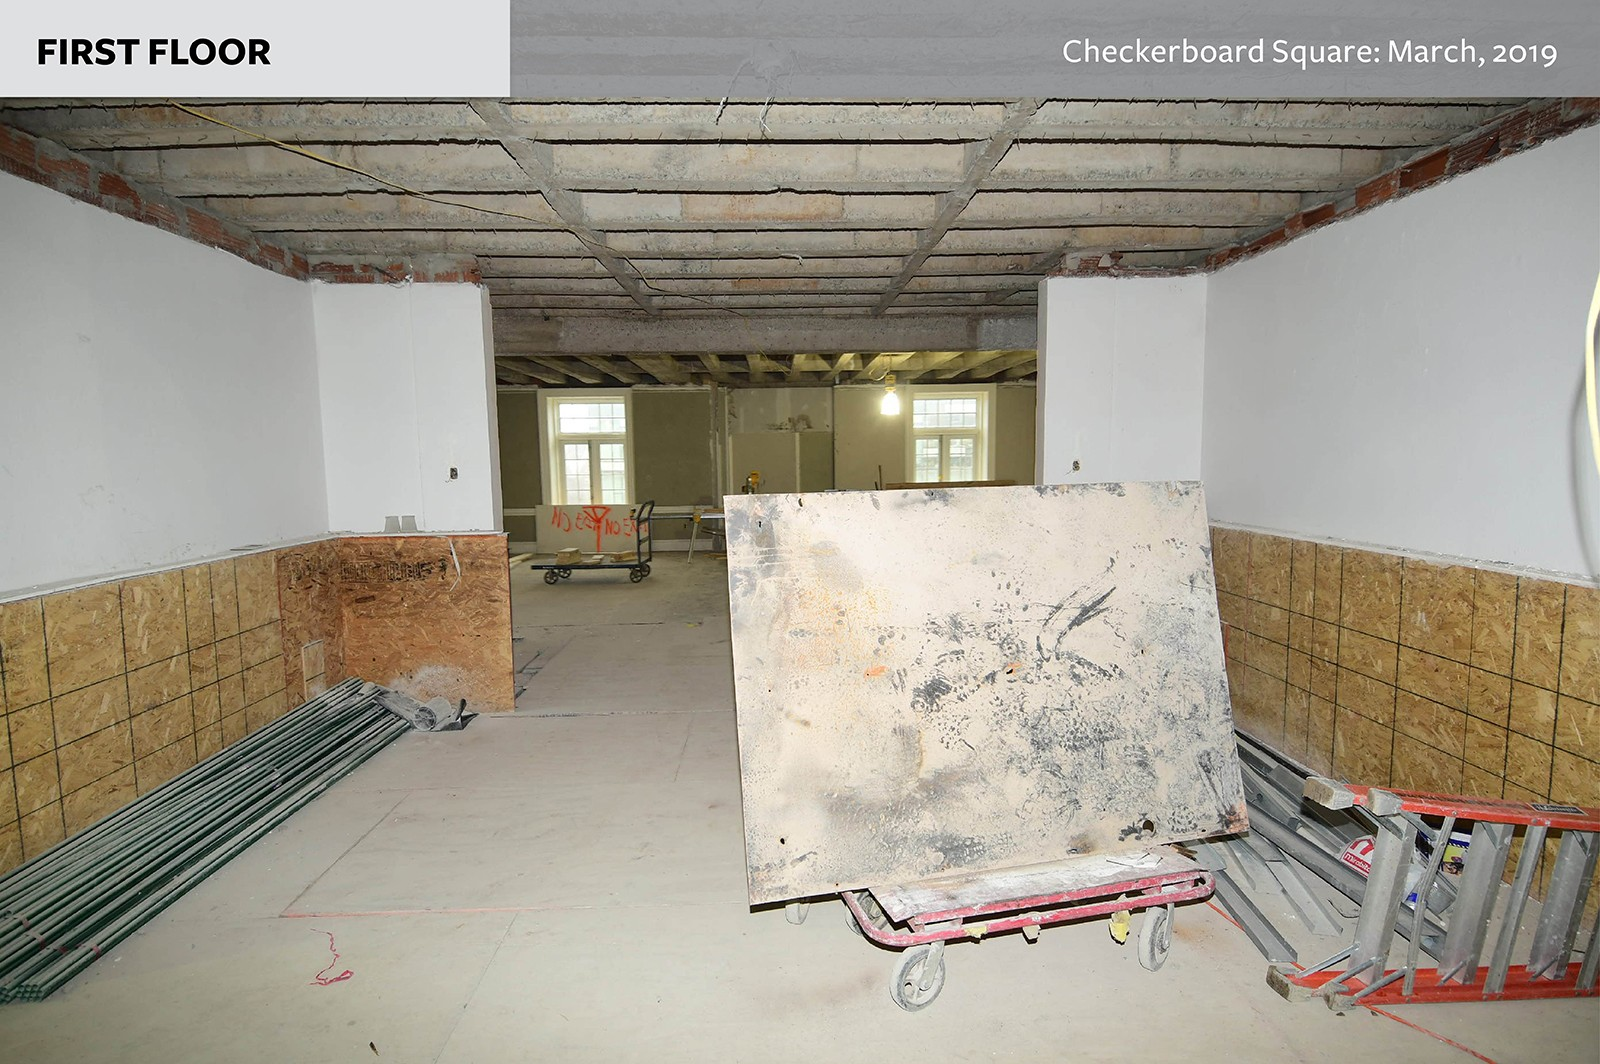 First floor: Checkerboard Square as of March, 2019